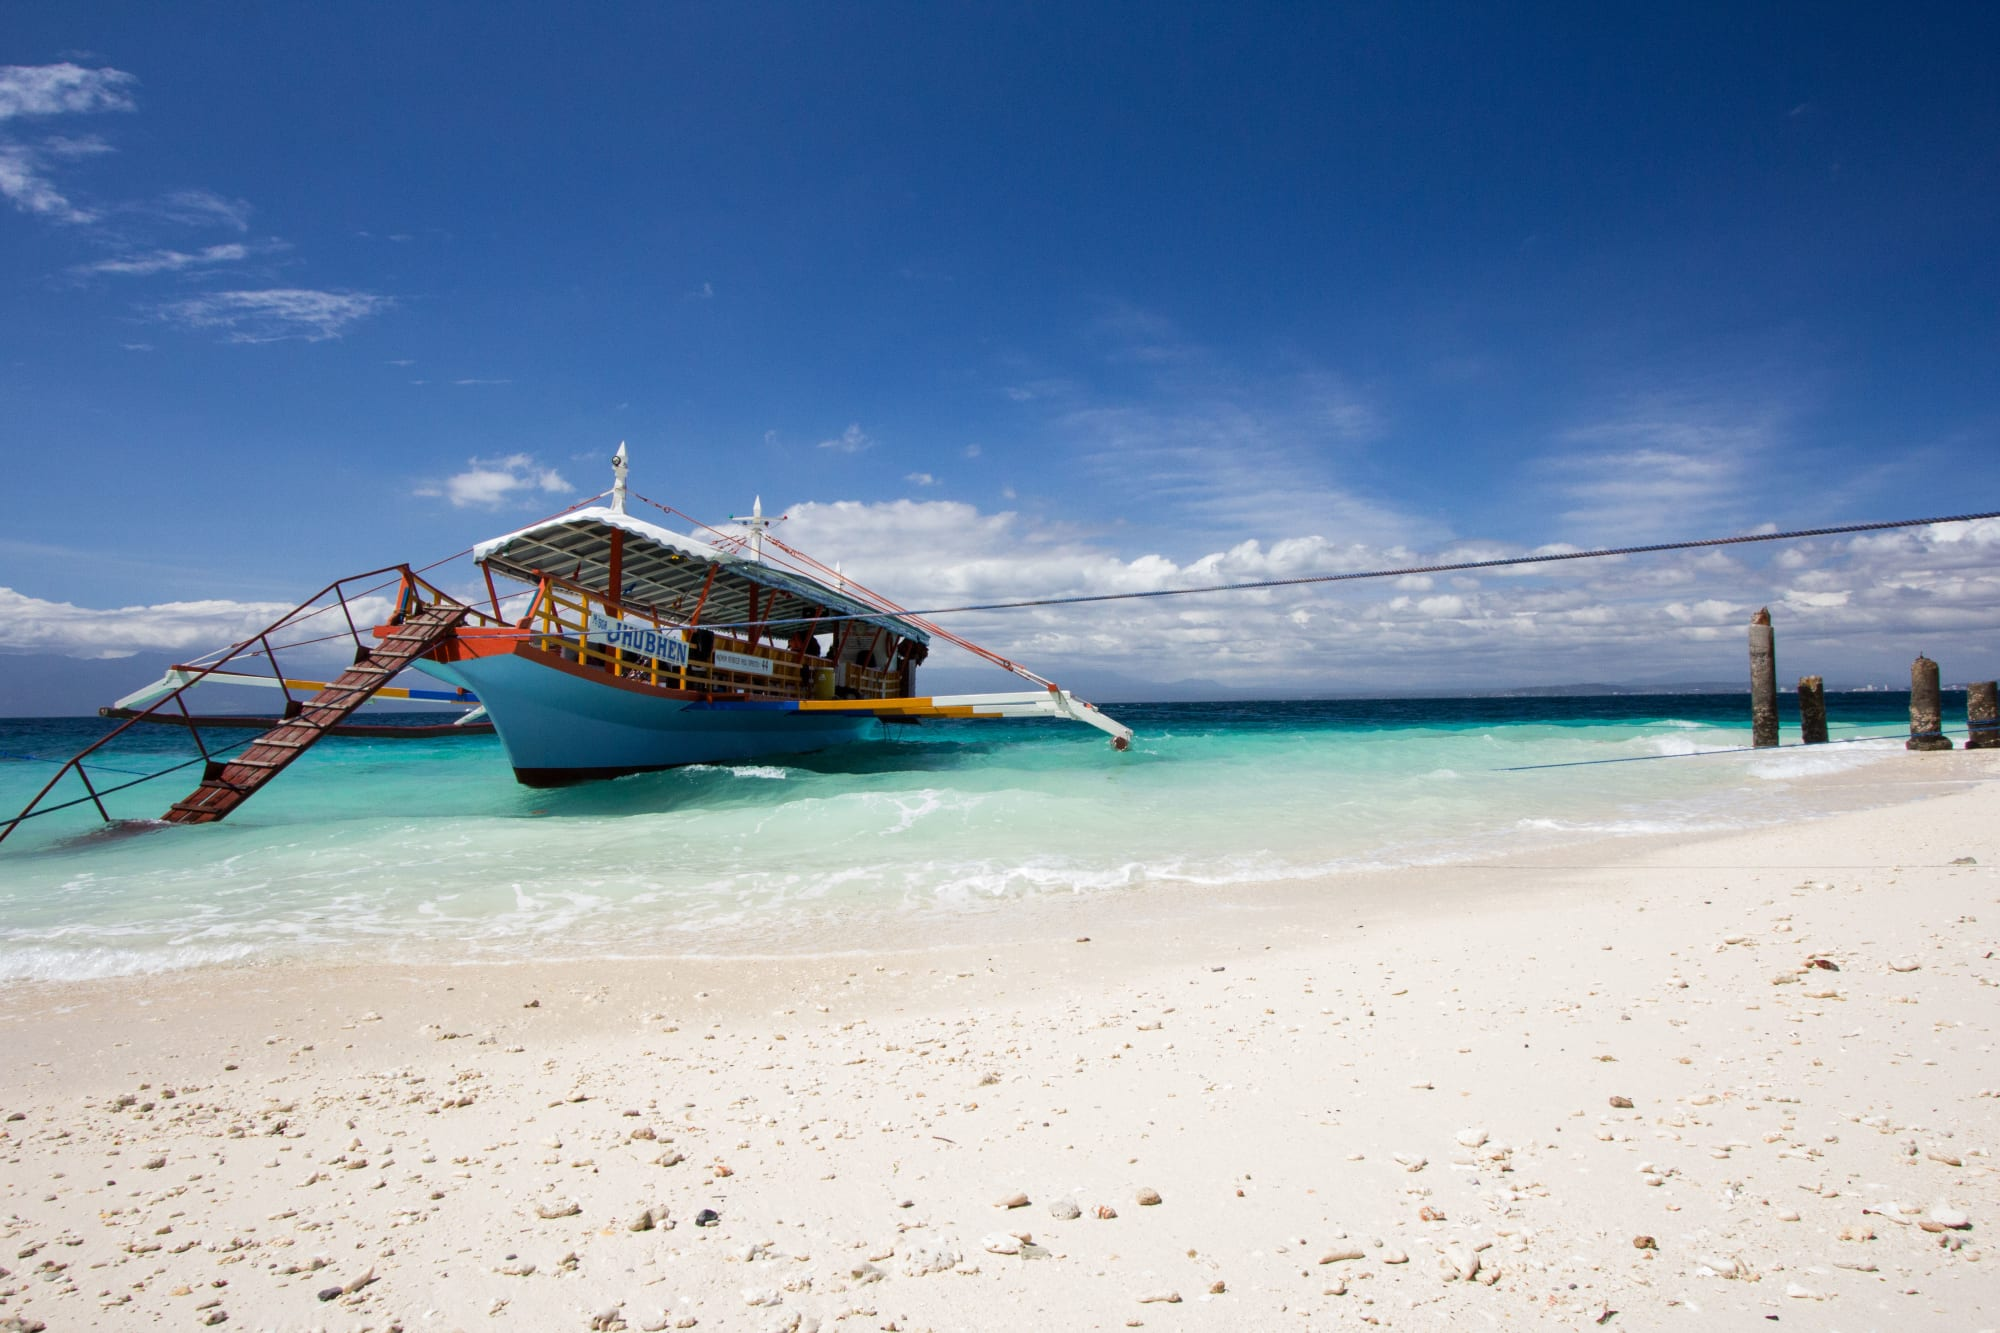 DOT appeals to the LGU to defer payments and provide incentives to tourism-related businesses